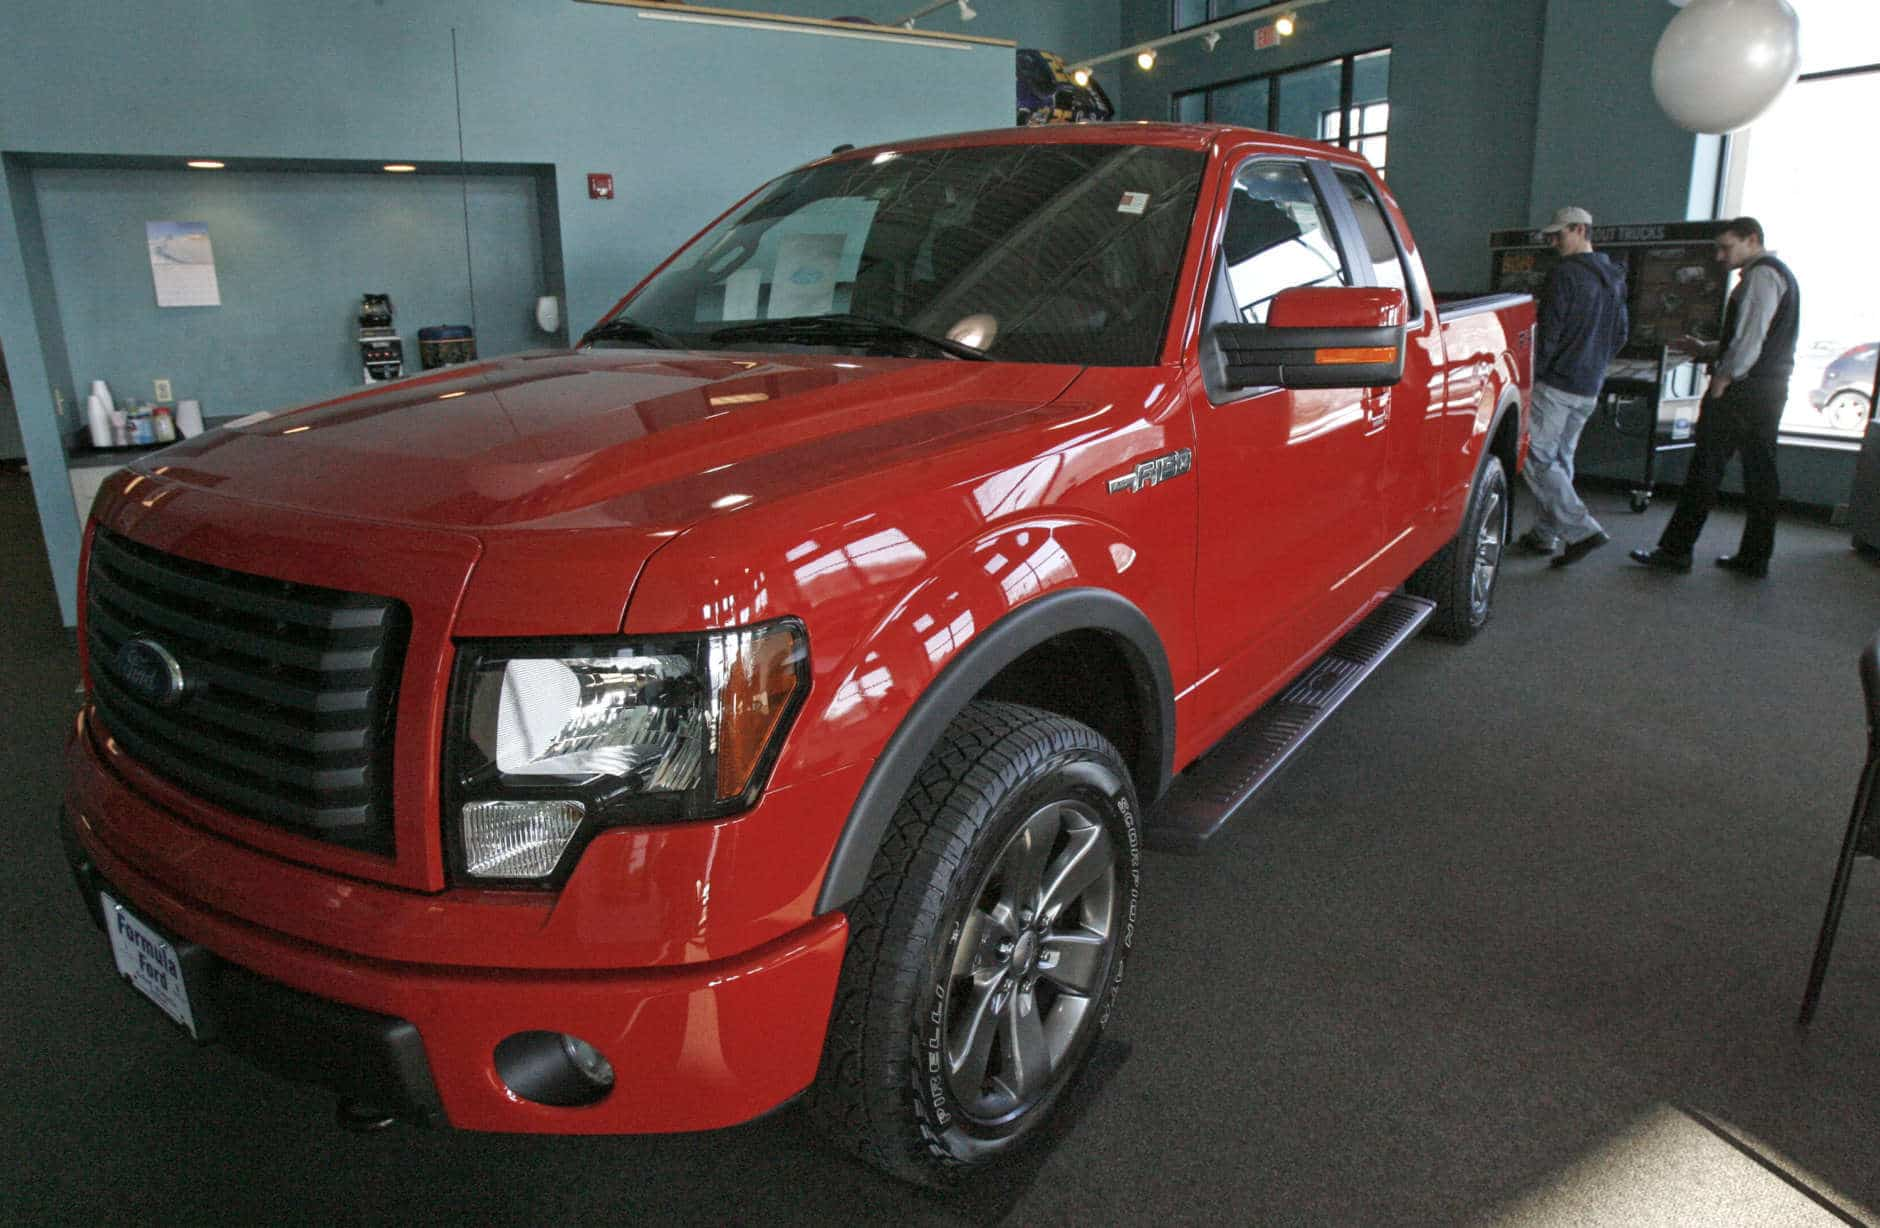 A customer looks over a Ford F-150 in the showroom of Formula Ford on Friday, Jan. 28, 2011 in Montpelier, Vt. Ford earned its biggest profit in more than a decade in 2010 as robust car and truck sales and years of cost cuts paid off for the company. (AP Photo/Toby Talbot)